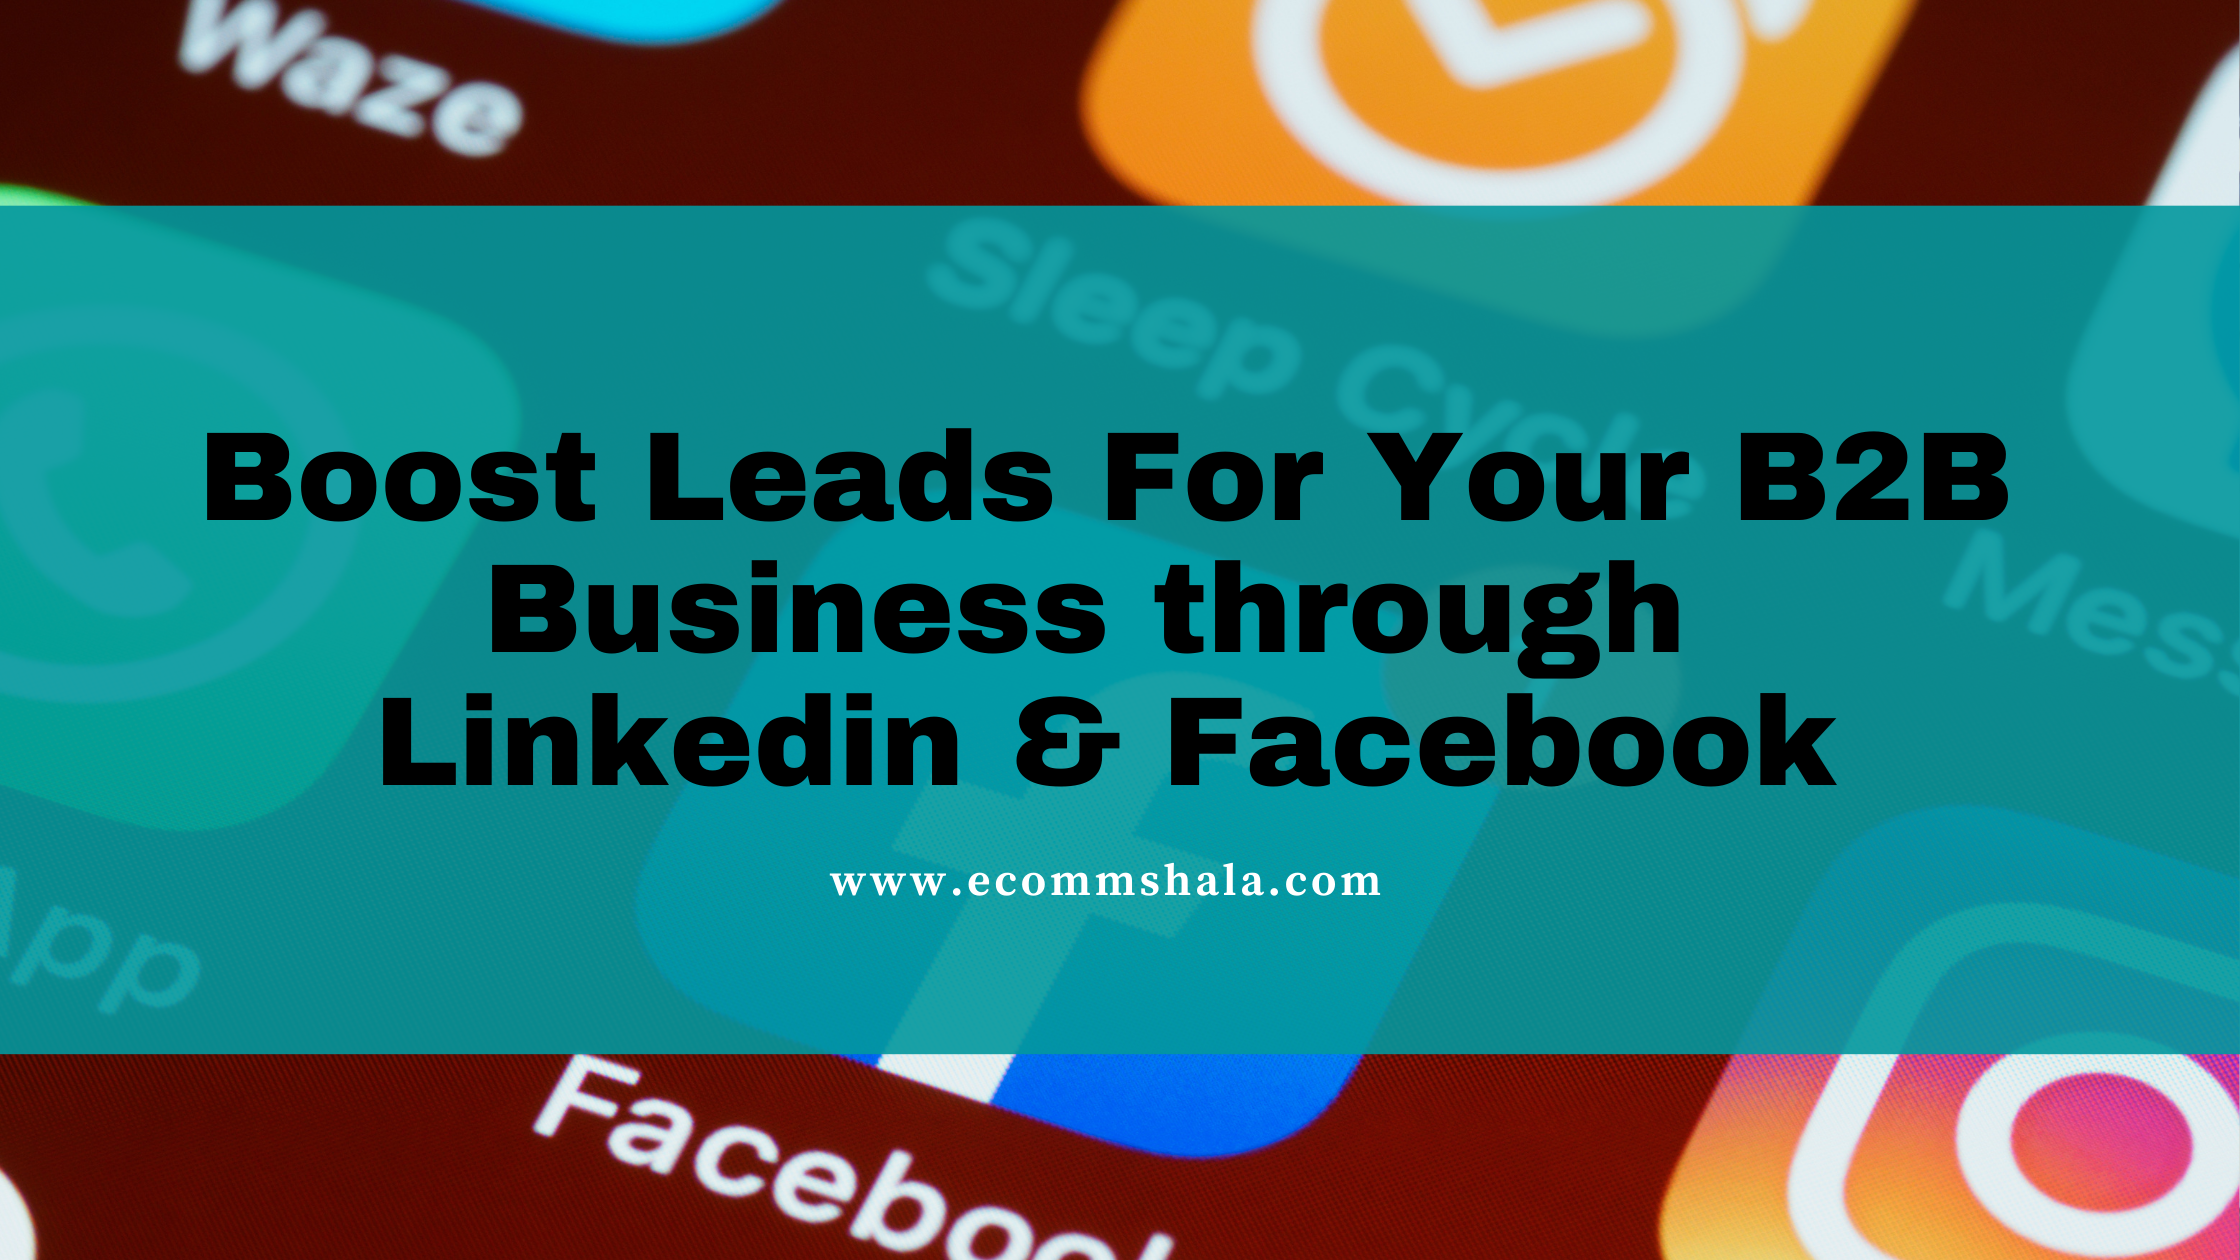 Boost Leads For Your B2B Business through Linkedin & Facebook